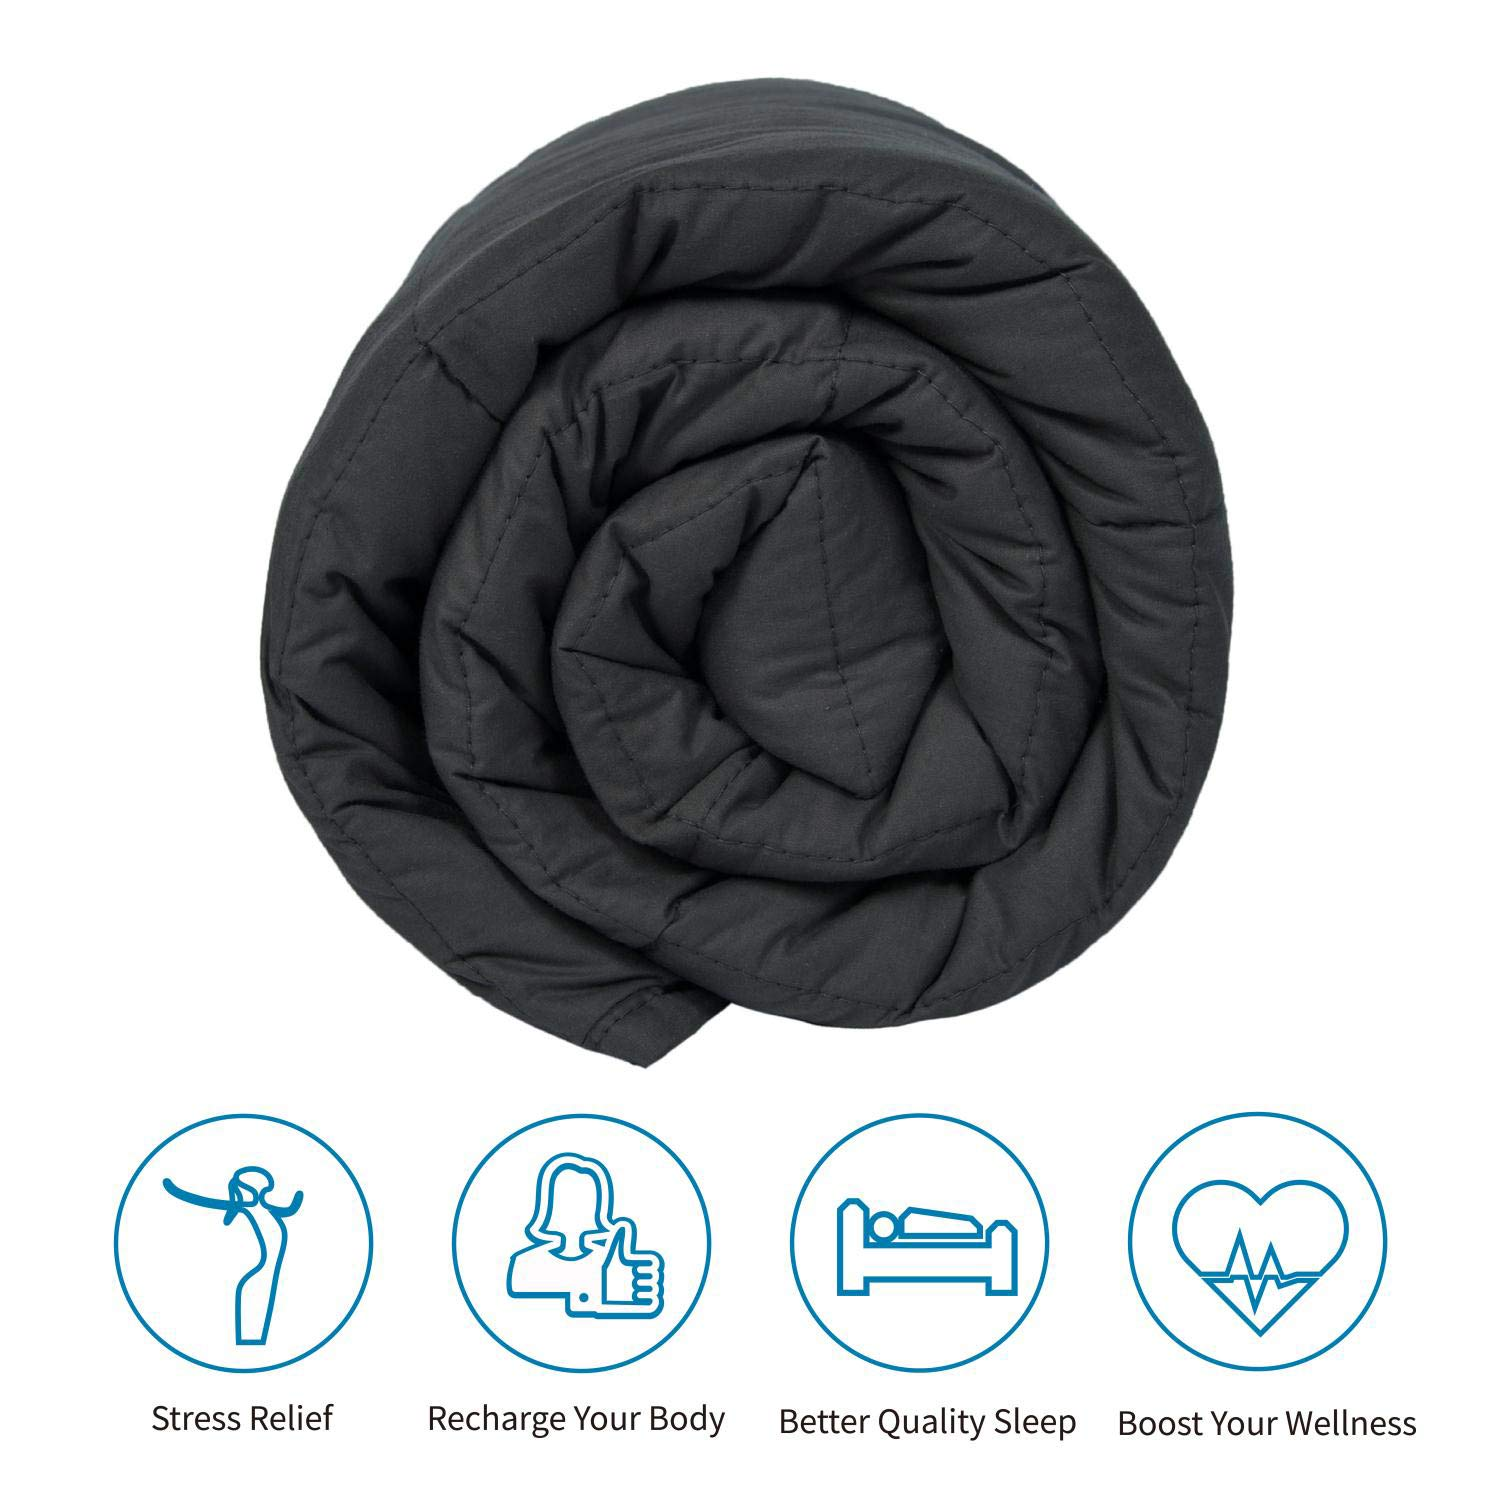 Weighted Blanket   60x80'' 15Lb  100% Cotton Material with Glass Beads   2.0 Plush, Breathable Adults Heavy Blanket   Queen Size Beds(Dark Grey) softan